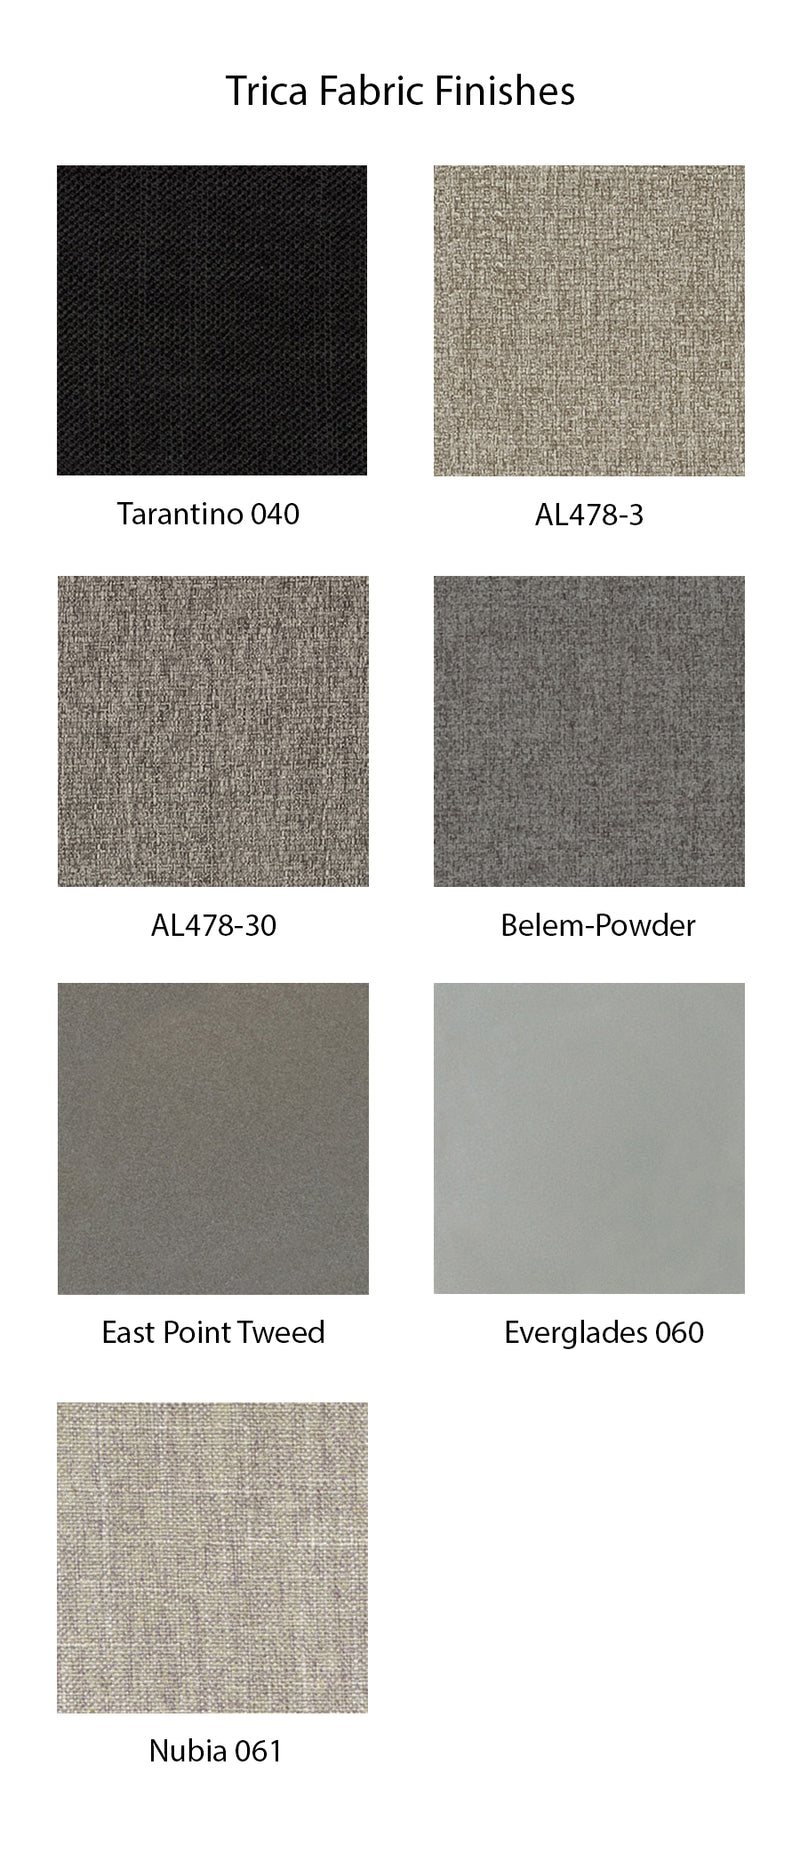 products/fabric-finishes-trica_10c6b222-c96e-4957-ba41-ac747abc61cc.jpg